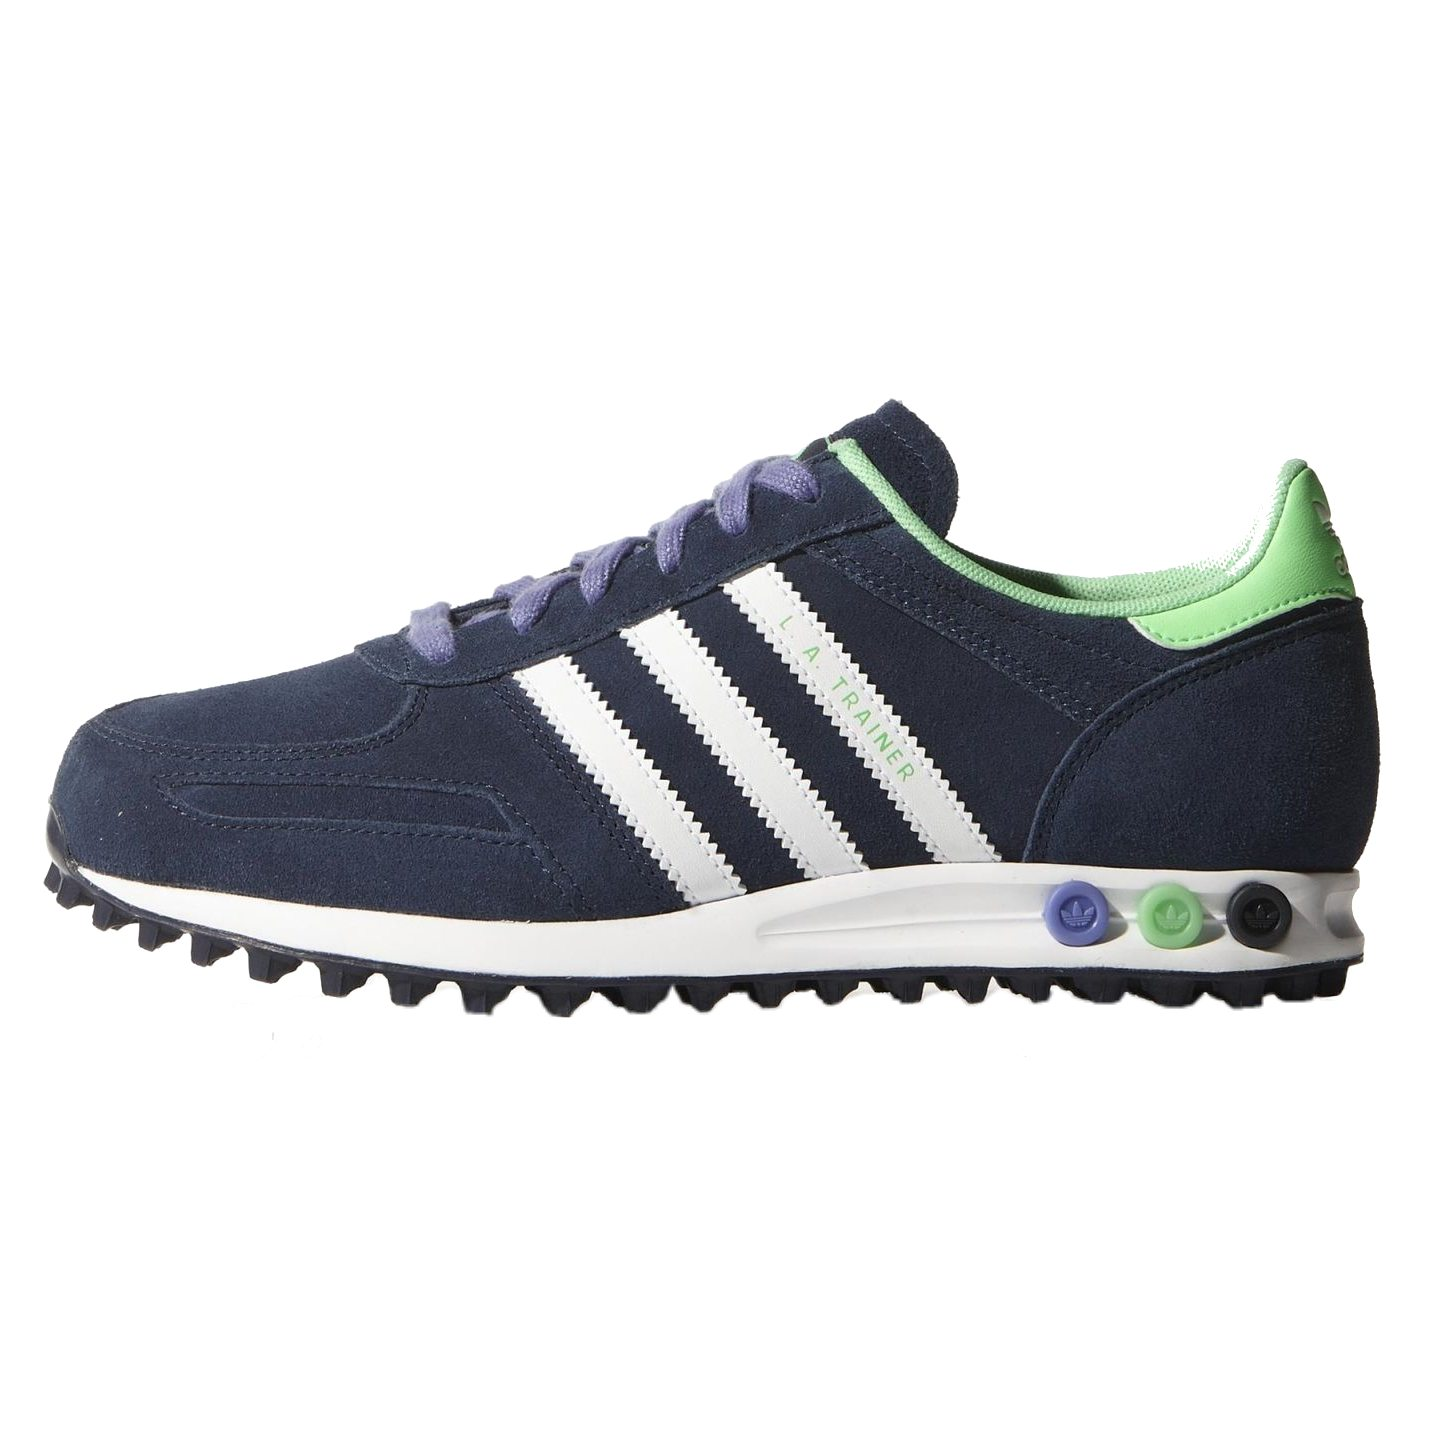 adidas originals la trainer unisex men 39 s women 39 s trainers. Black Bedroom Furniture Sets. Home Design Ideas